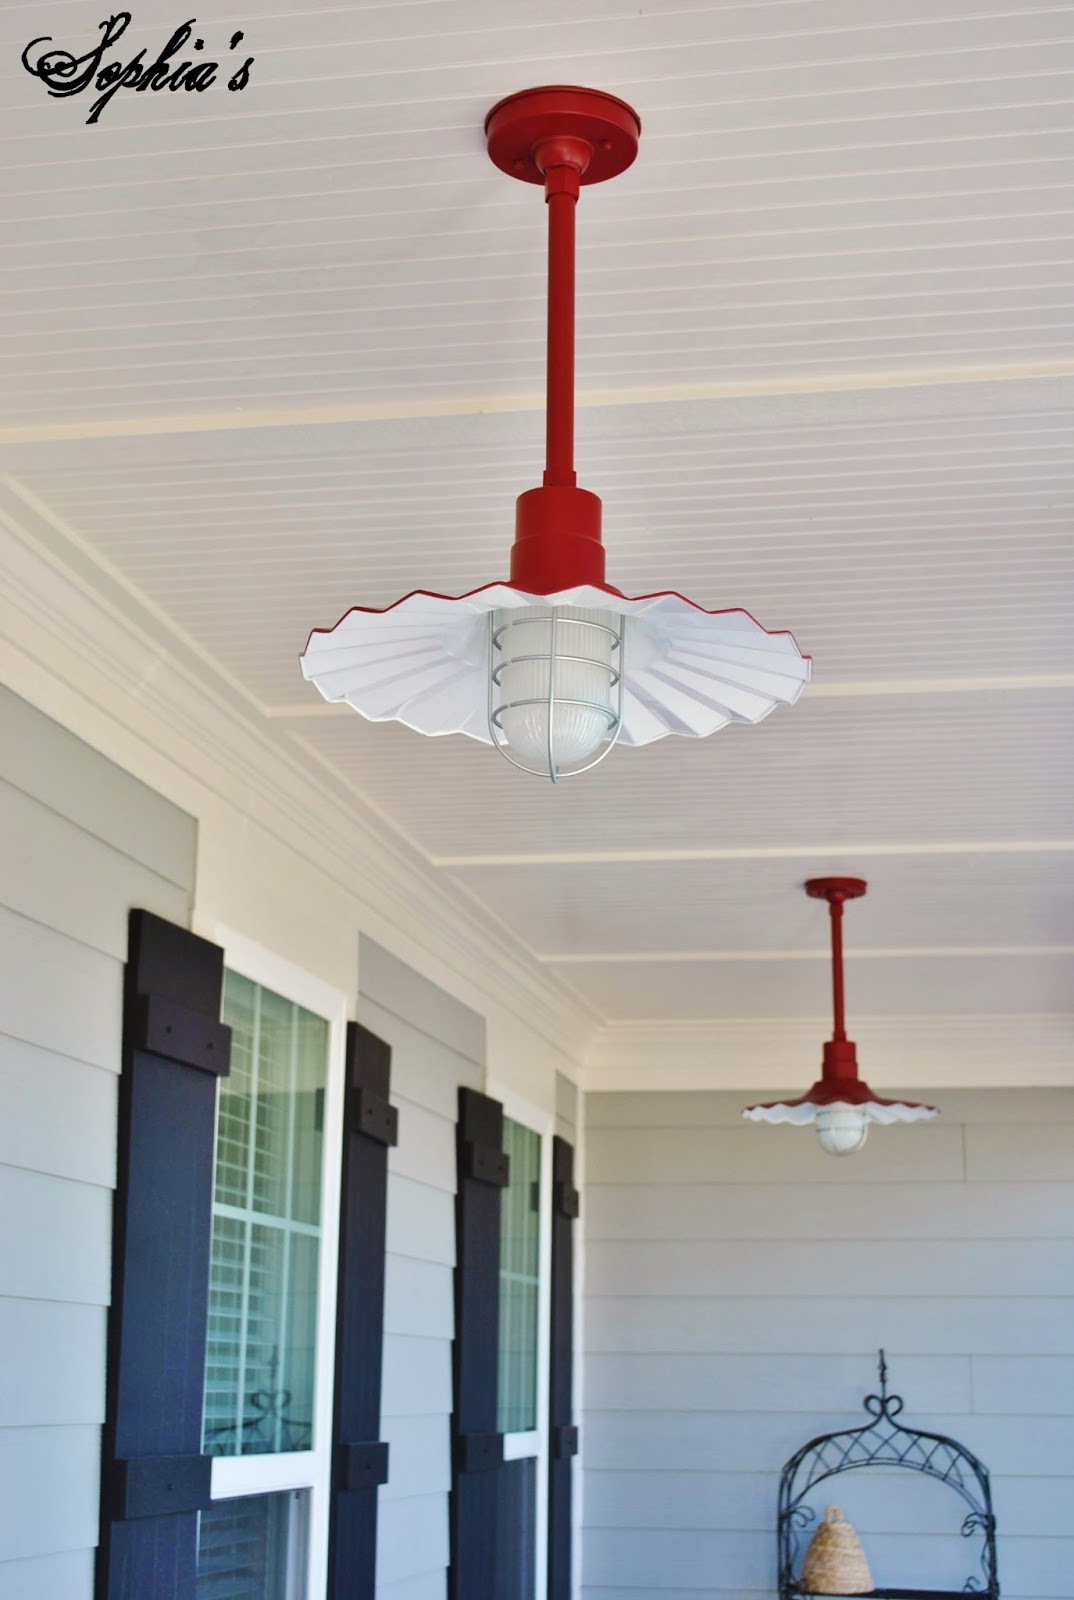 Best ideas about Red Porch Lights . Save or Pin Sophia s Snippets of the New House Now.